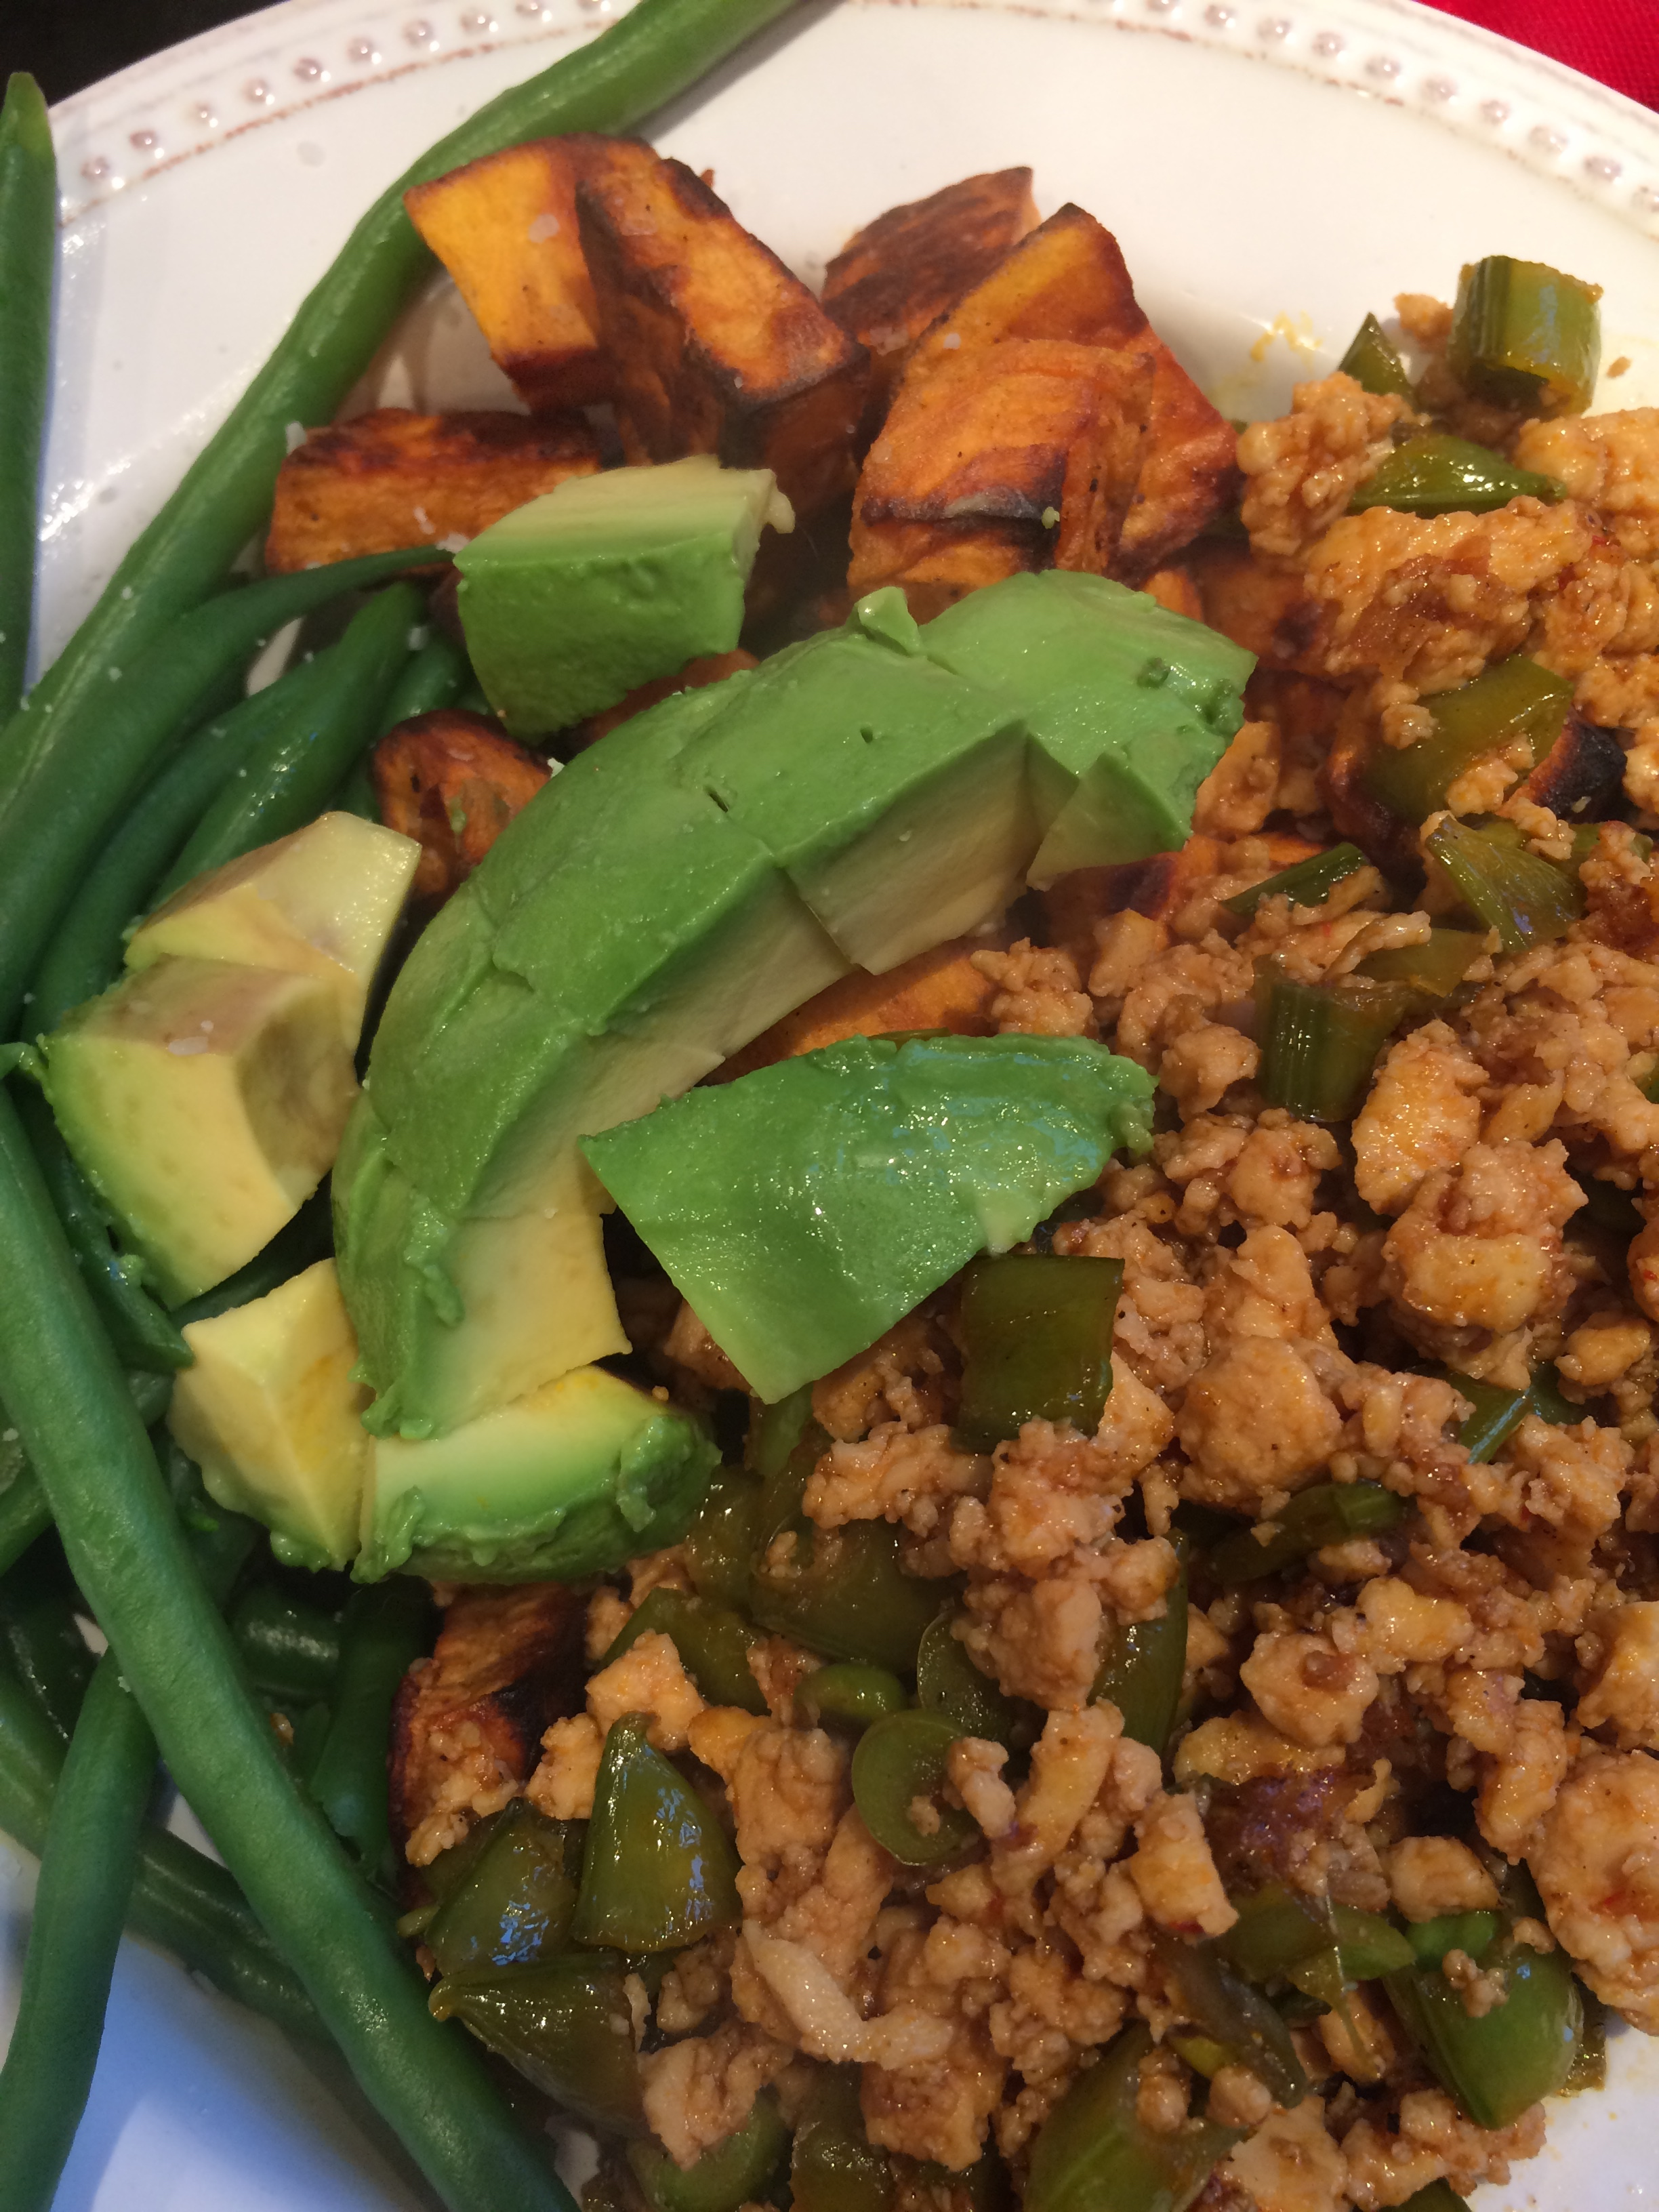 Spicy tofu with snap peas, with roasted sweet potatoes, avocado, green beans